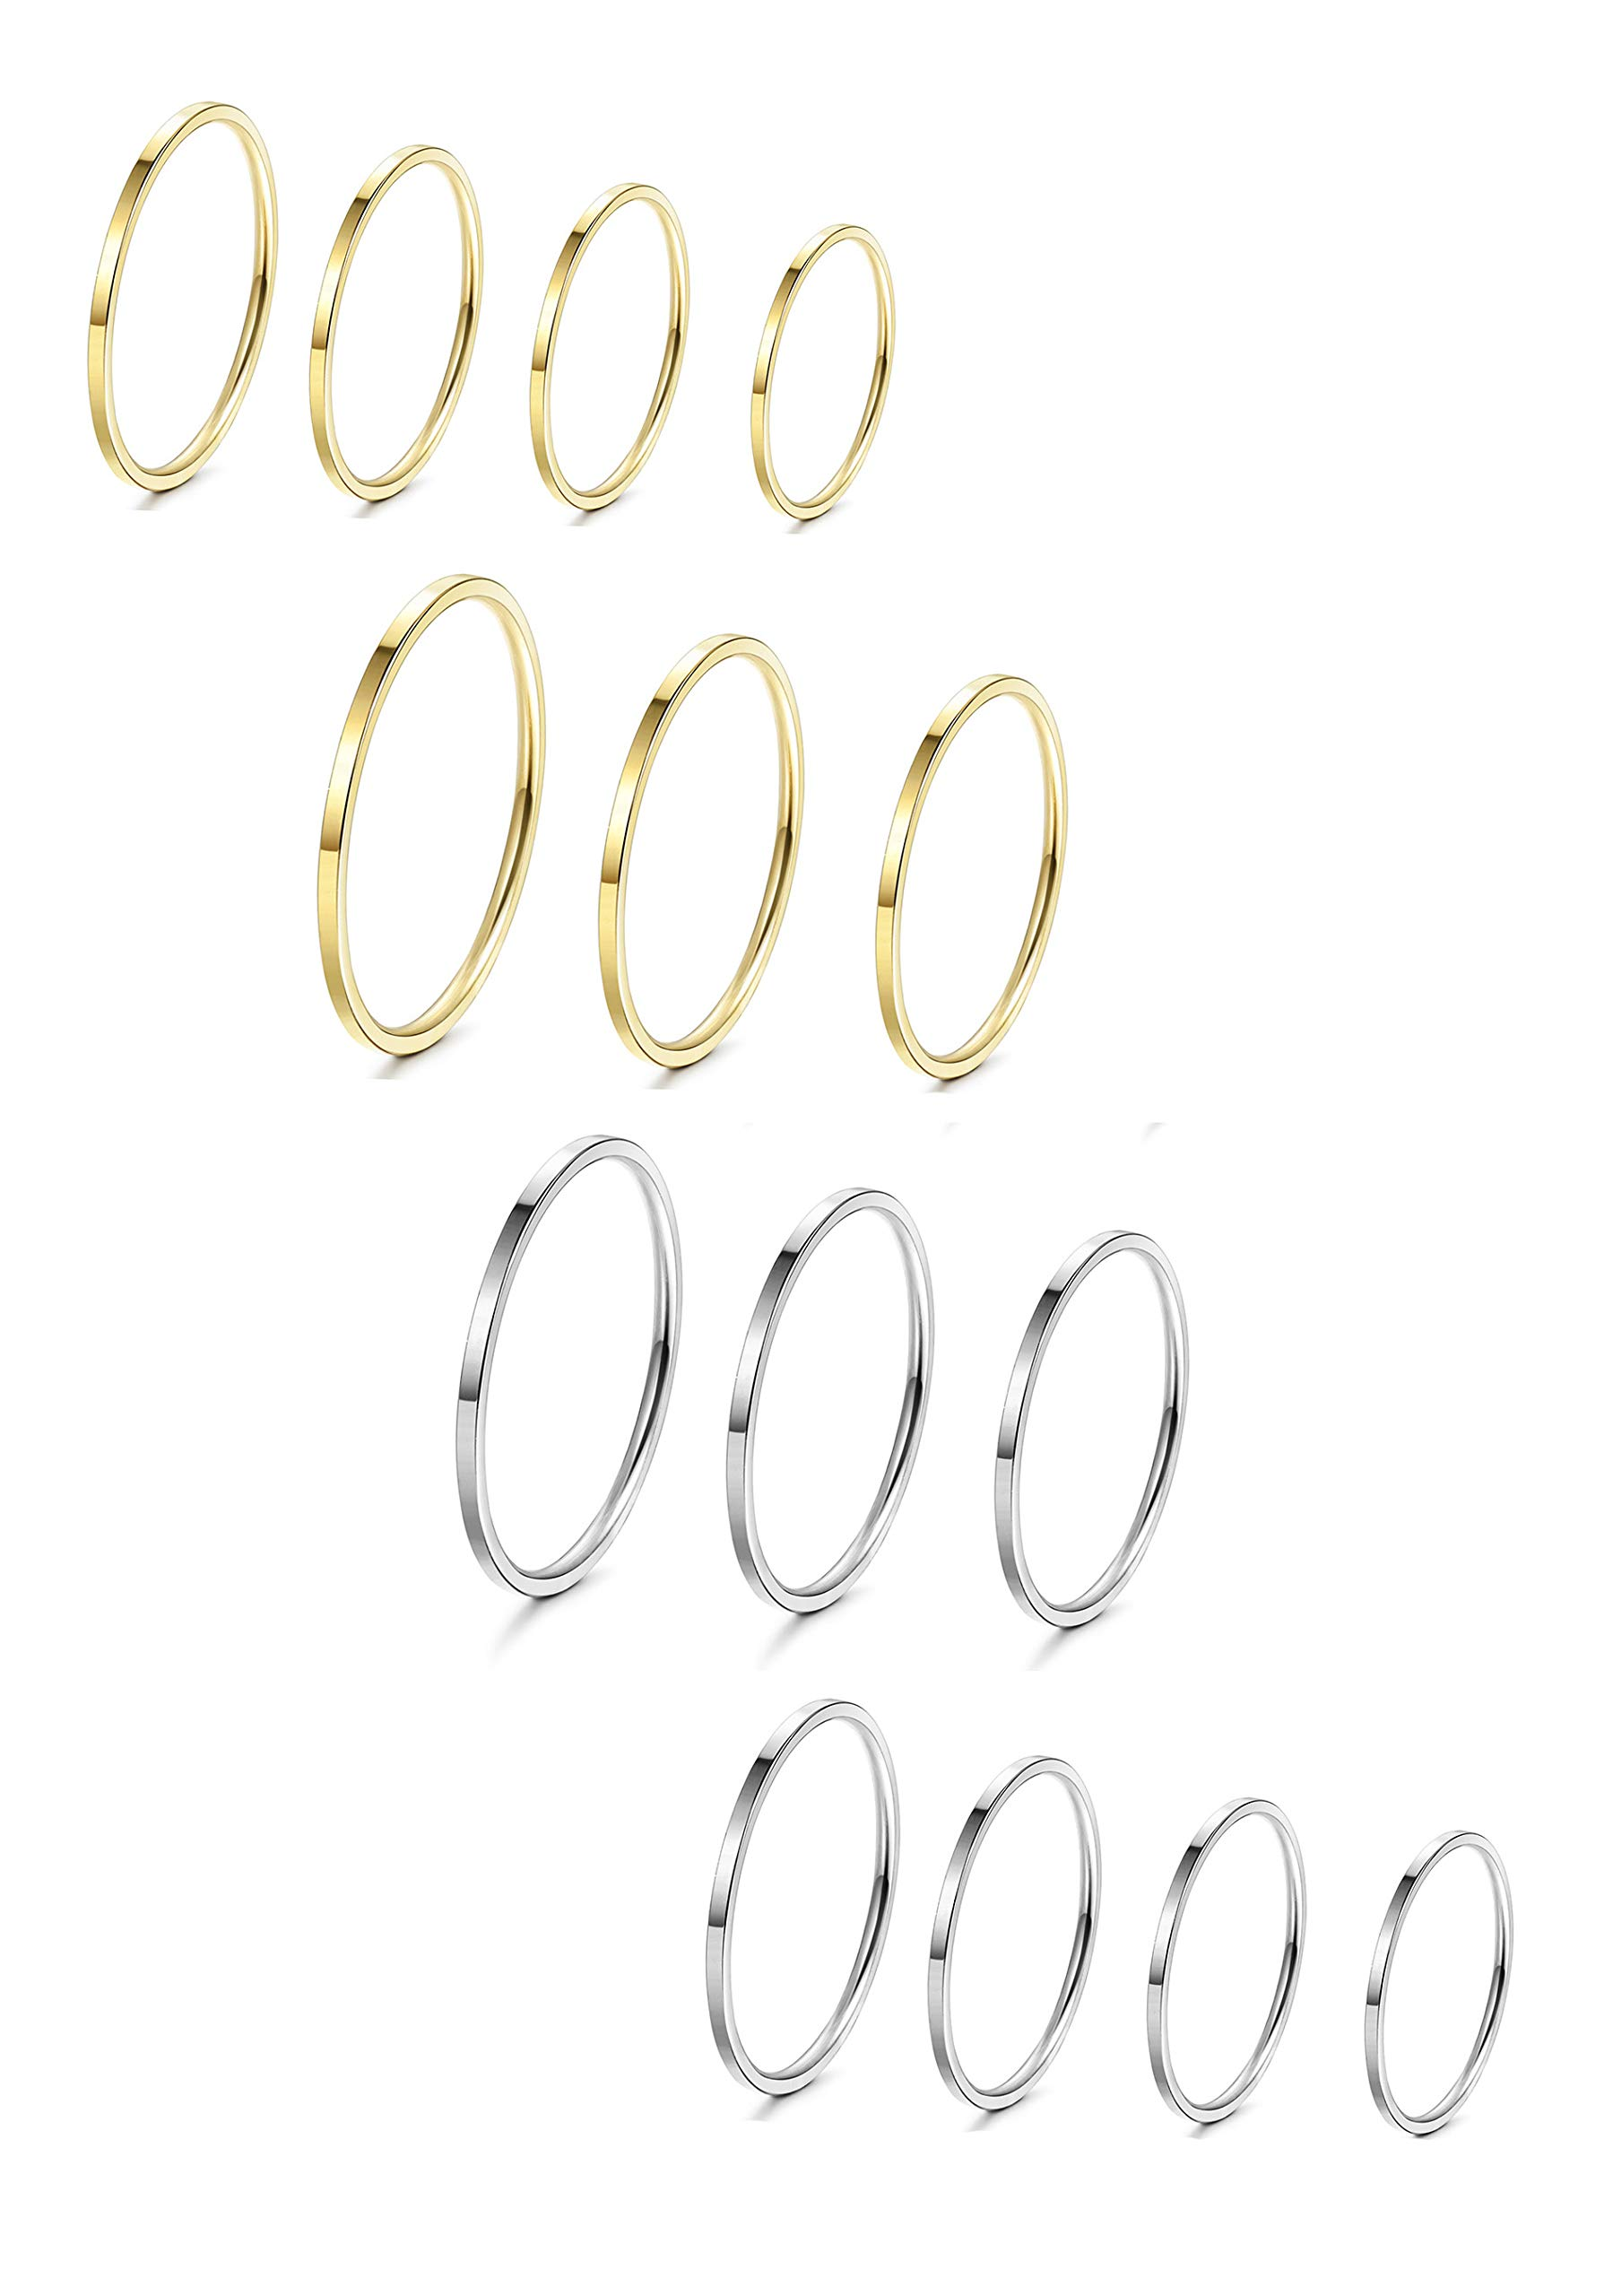 LOYALLOOK 8-14Pcs 1mm Stainless Steel Women's Plain Band Knuckle Stacking Midi Rings Comfort Fit Silver/Gold/Rose Tone by LOYALLOOK